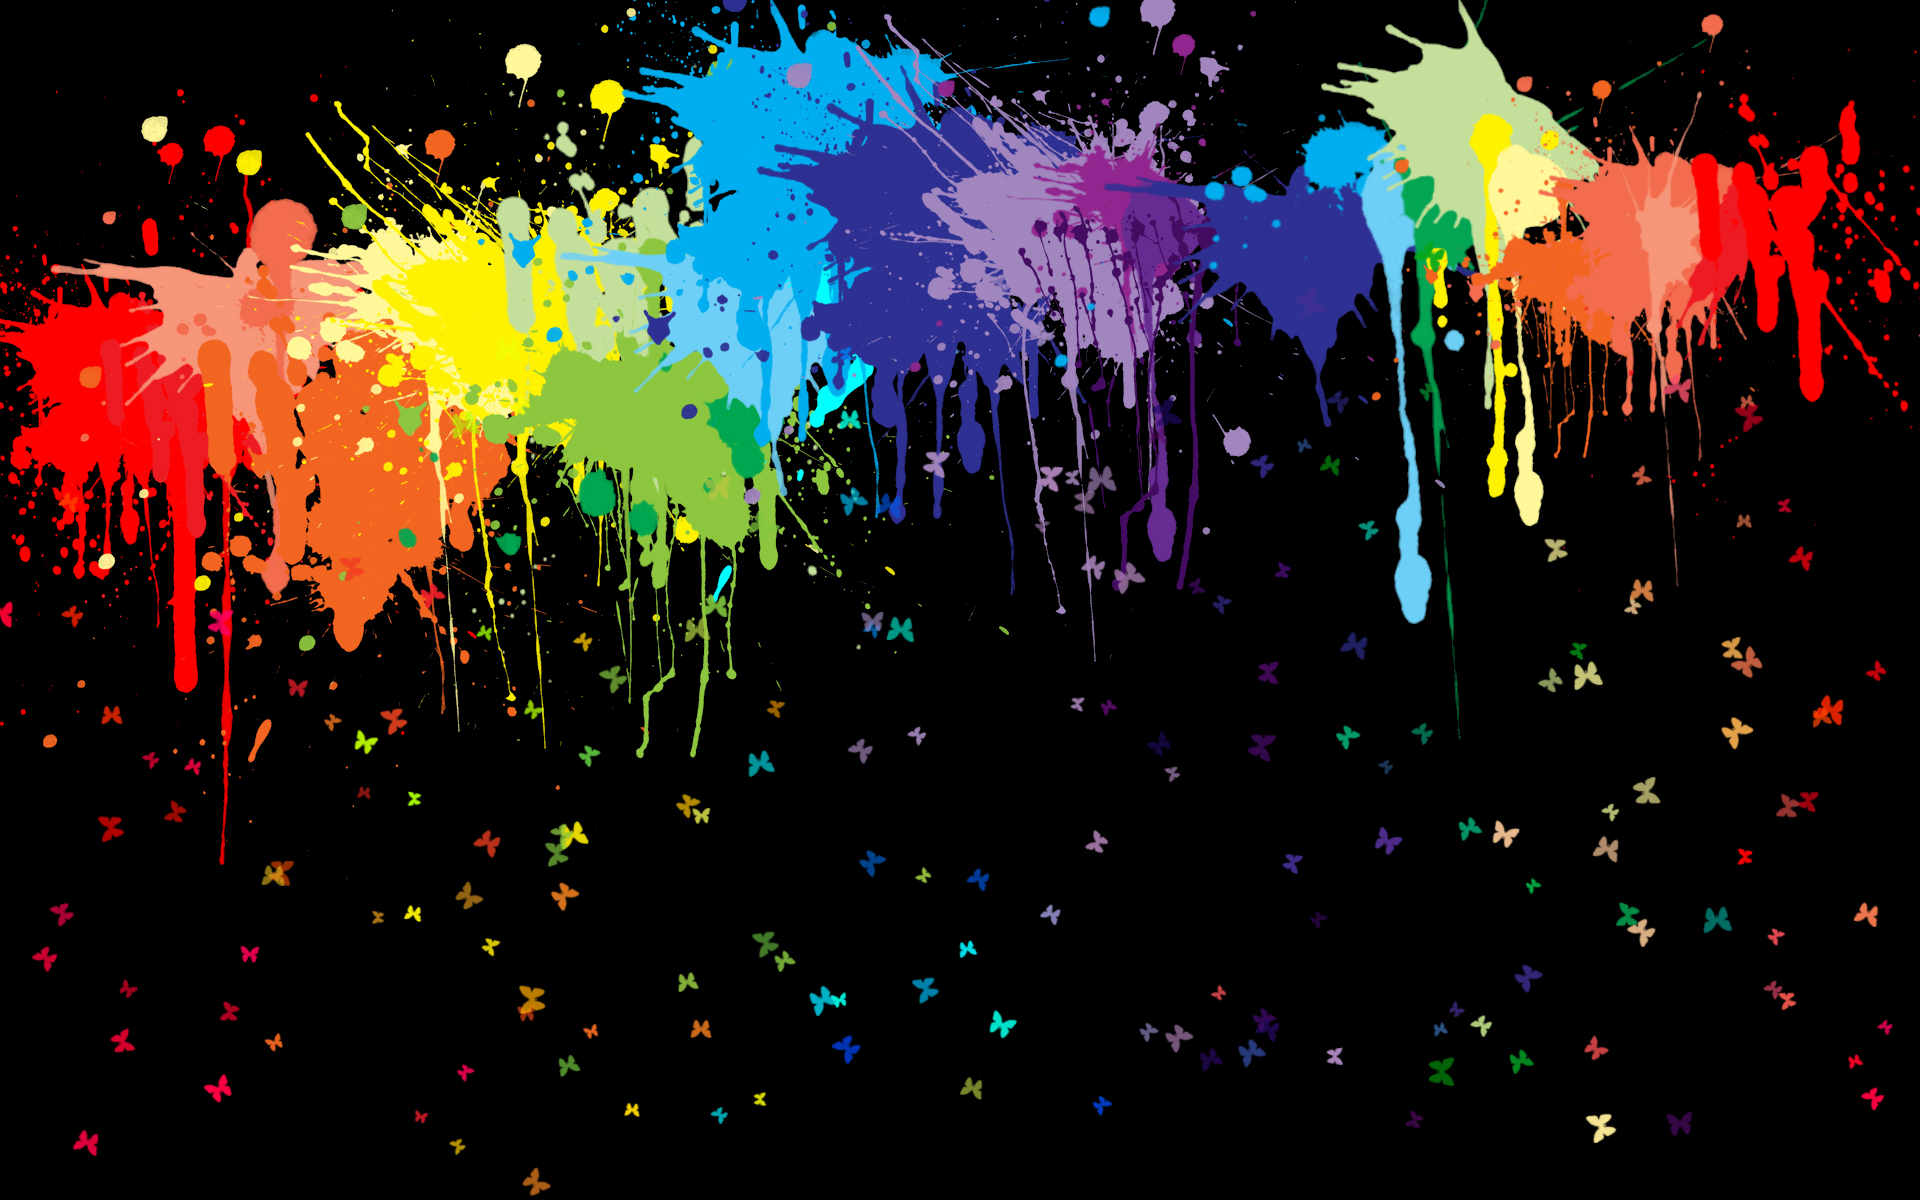 Hd wallpaper colour - For Forums Url Http Www Desivalley Com